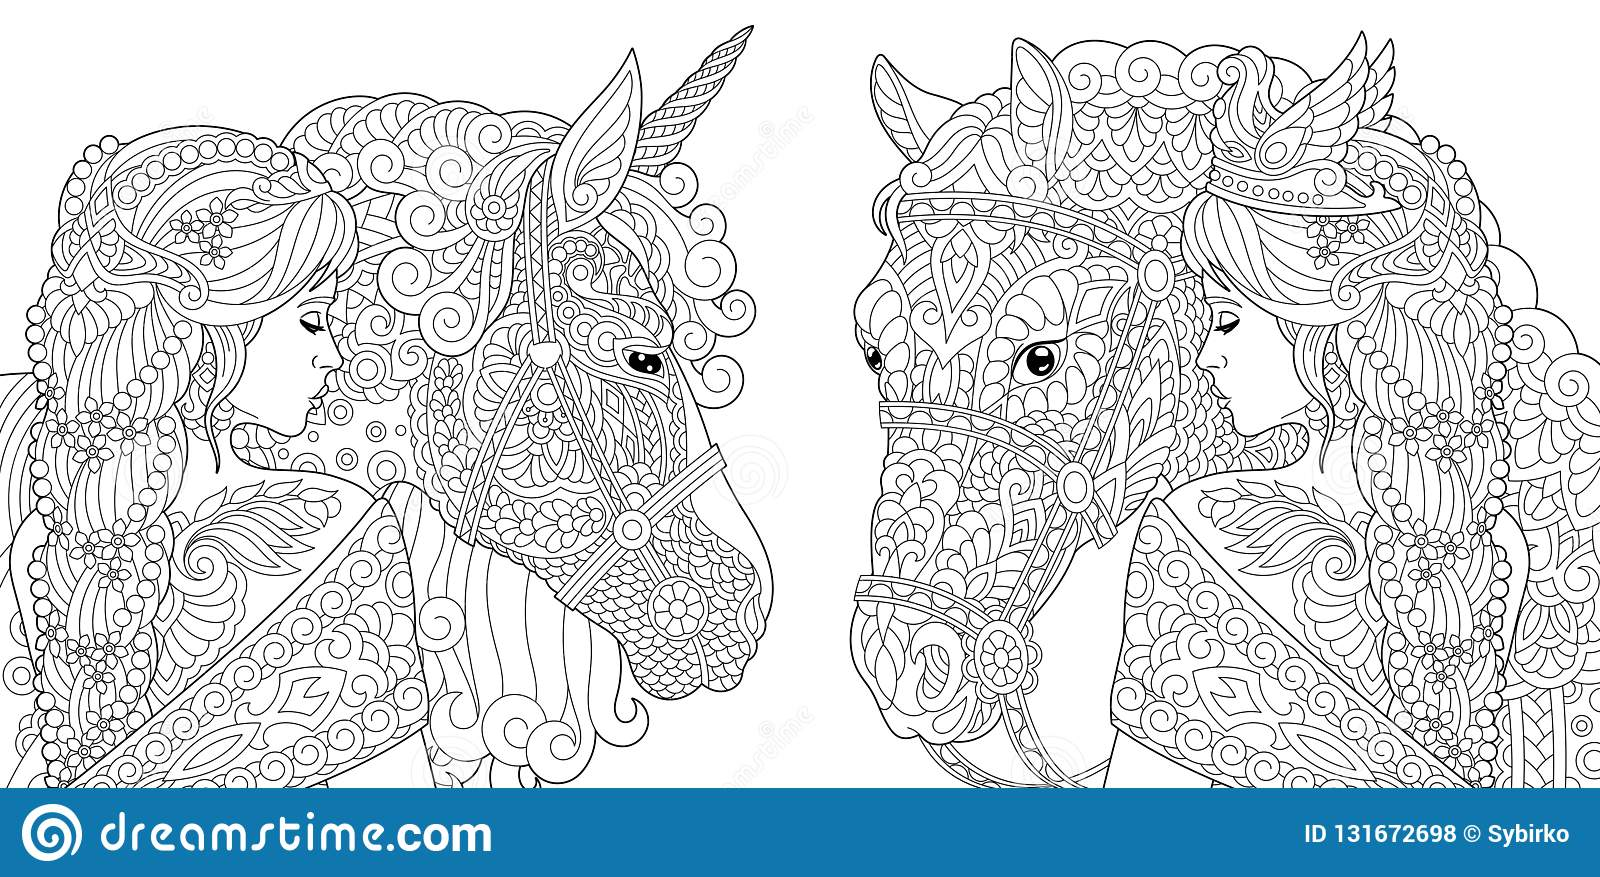 Coloring pages coloring book for adults colouring pictures with fantasy girl and unicorn horse